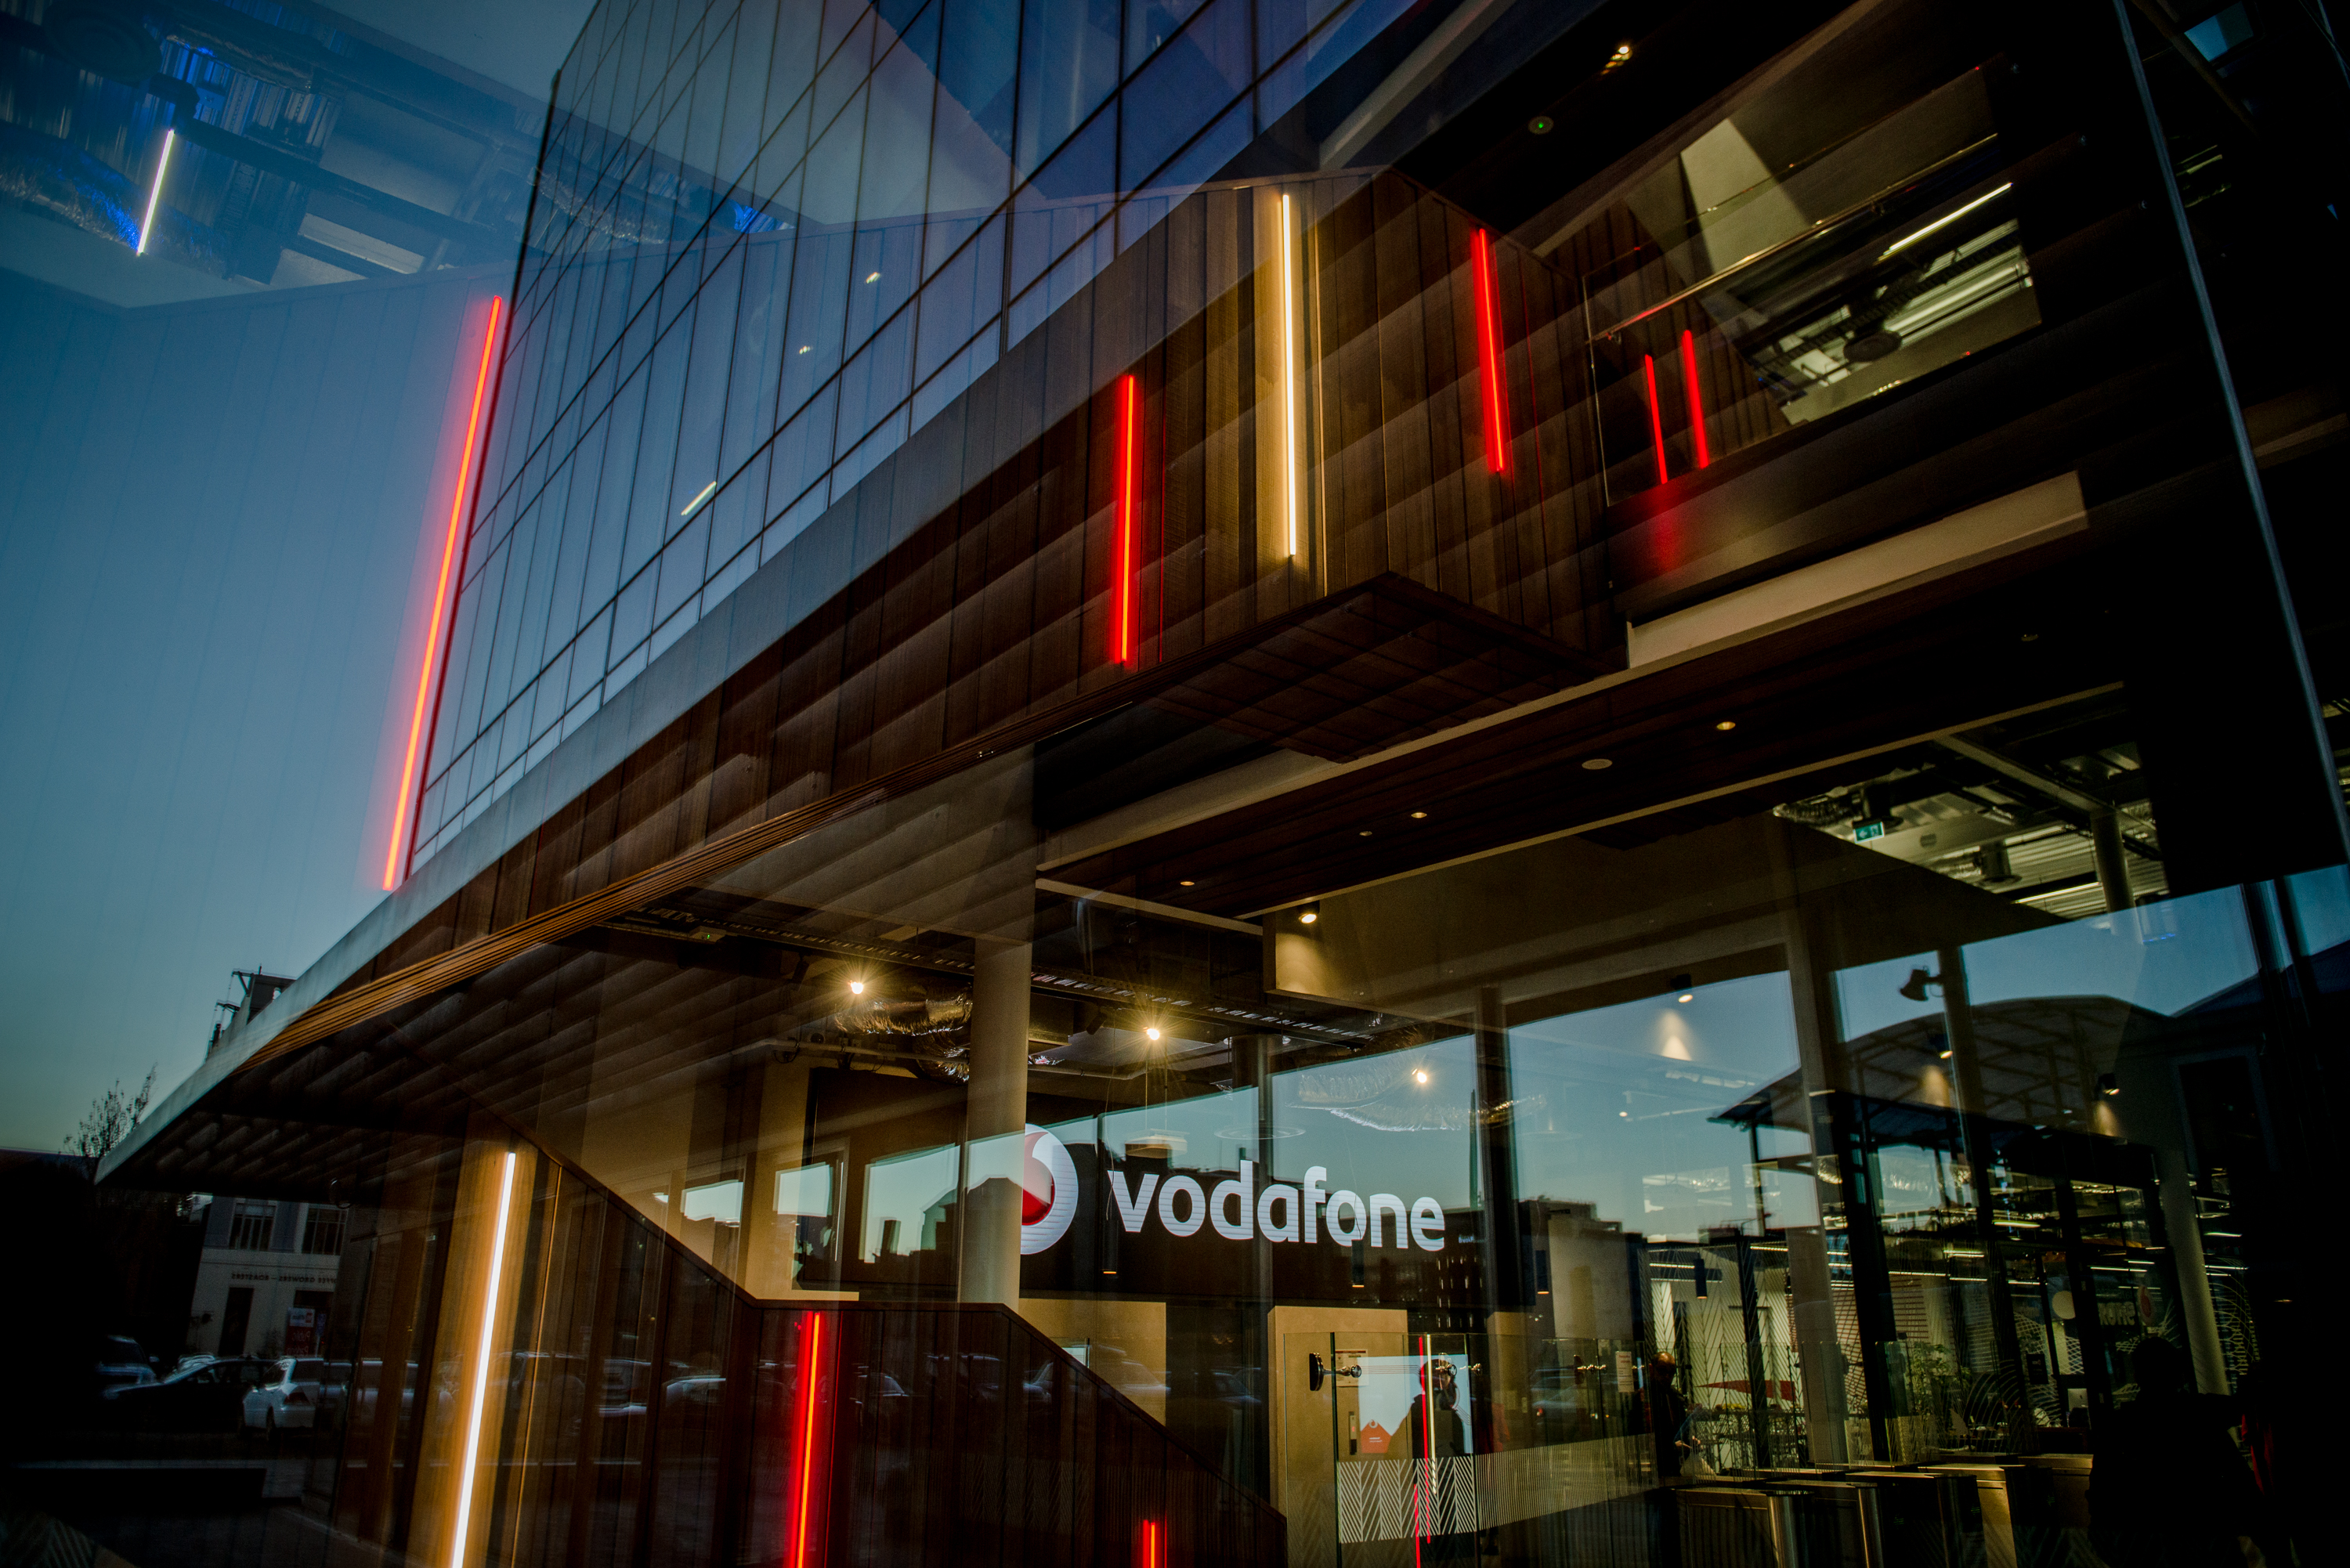 Vodafone Christchurch Building Photographs